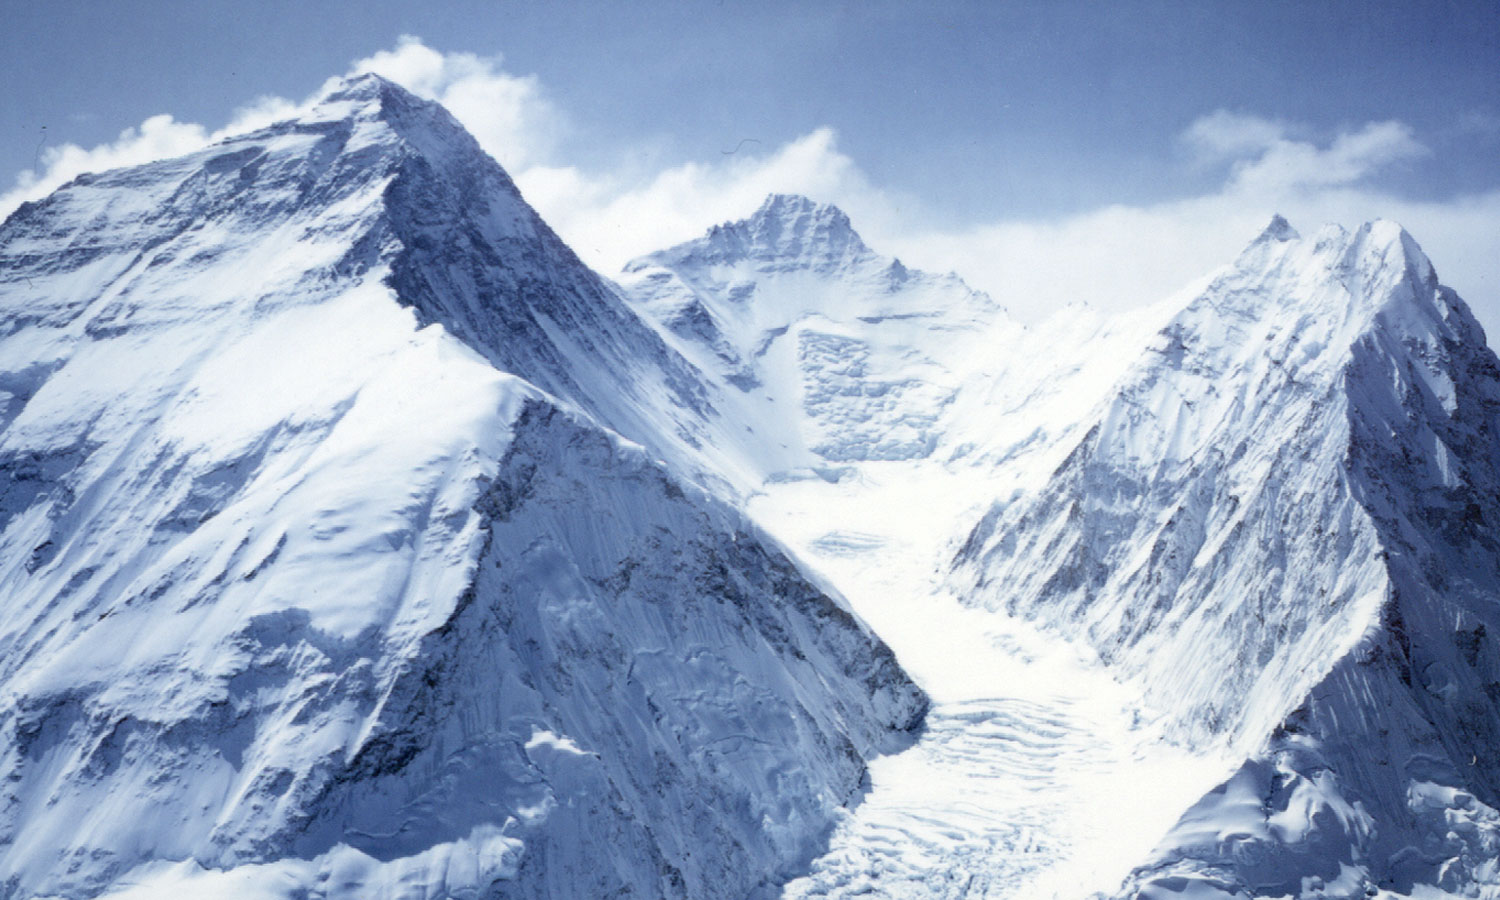 What would be a story to use in an essay about the dangers of mount everest?